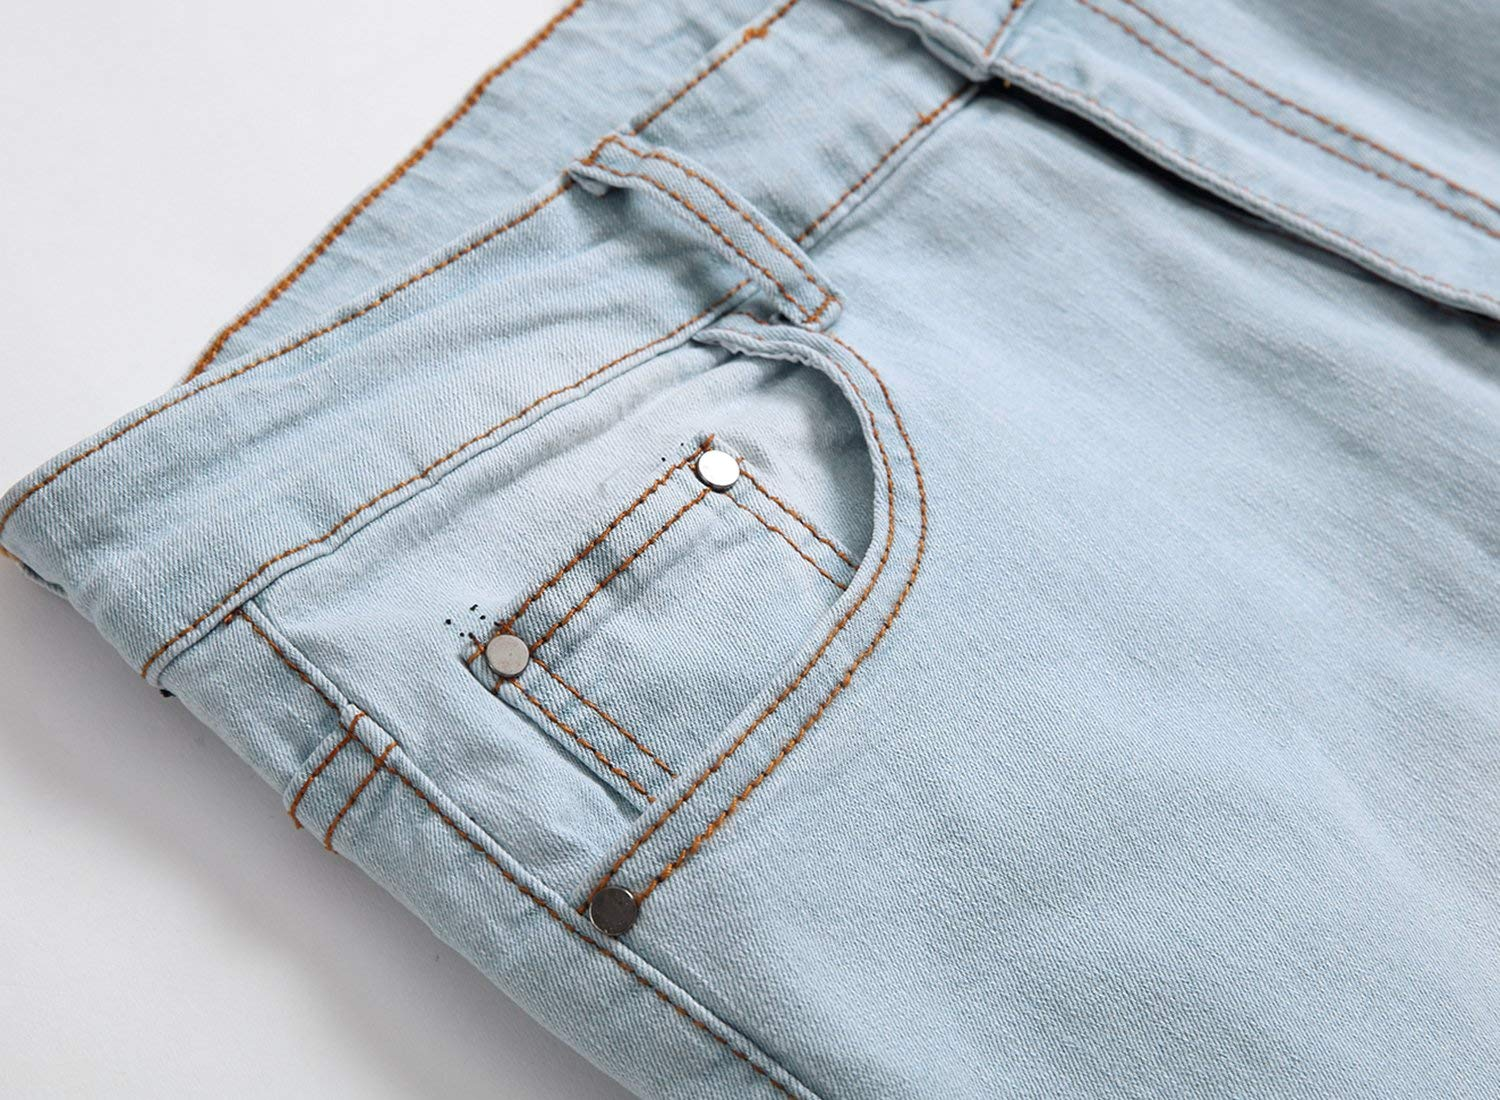 GARMOY Men's Fashion Light Blue Ripped Destroyed Flower Embroidered Skinny Fit Jeans Blue 32 by GARMOY (Image #4)